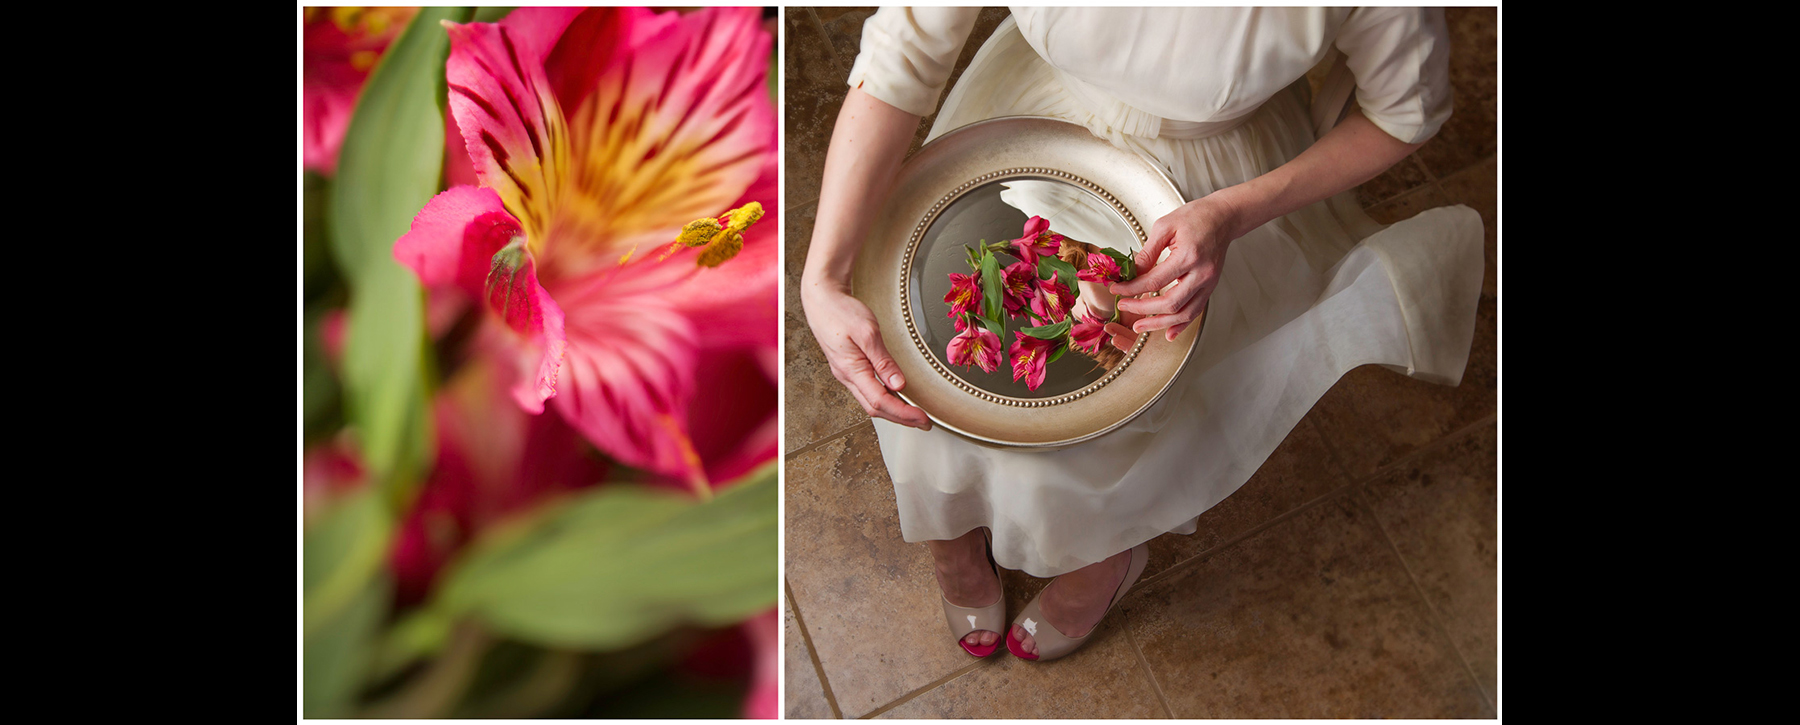 Alstroemeria: As I lay out the pieces before me, I realize those things I have the most   devotion     to continually reflect back to my heart.